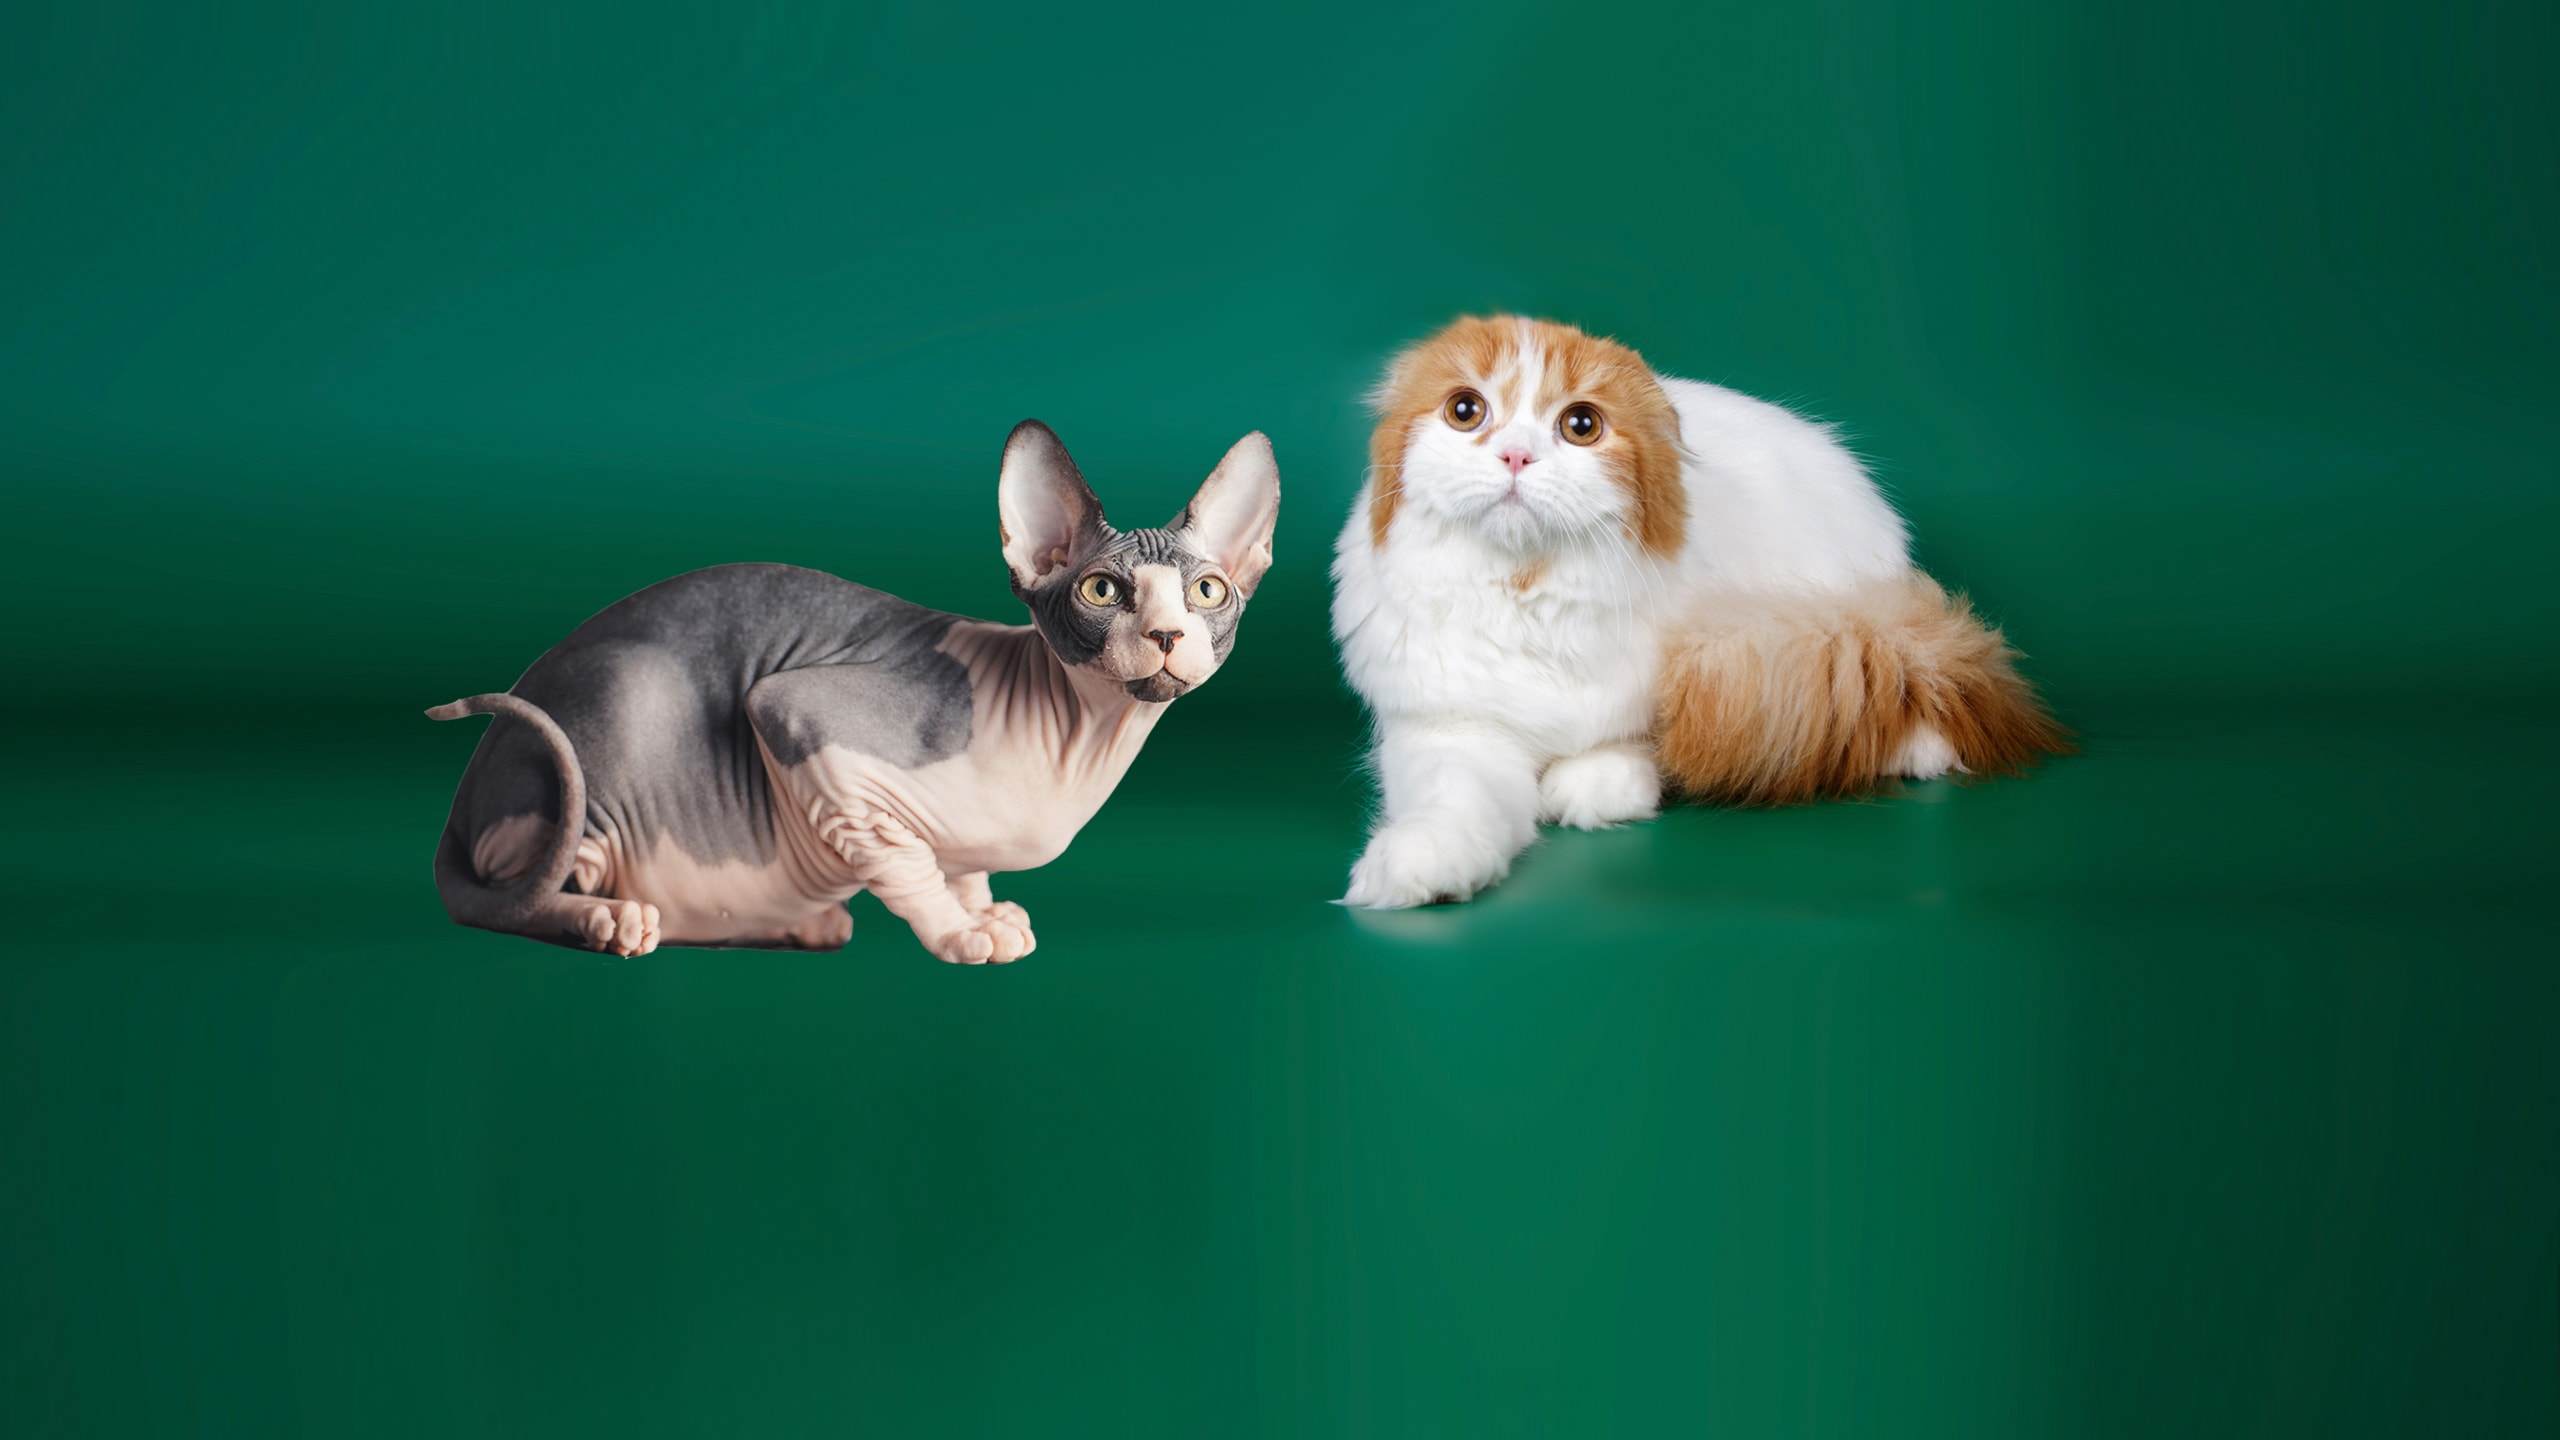 076 1st top5 cats 5 3